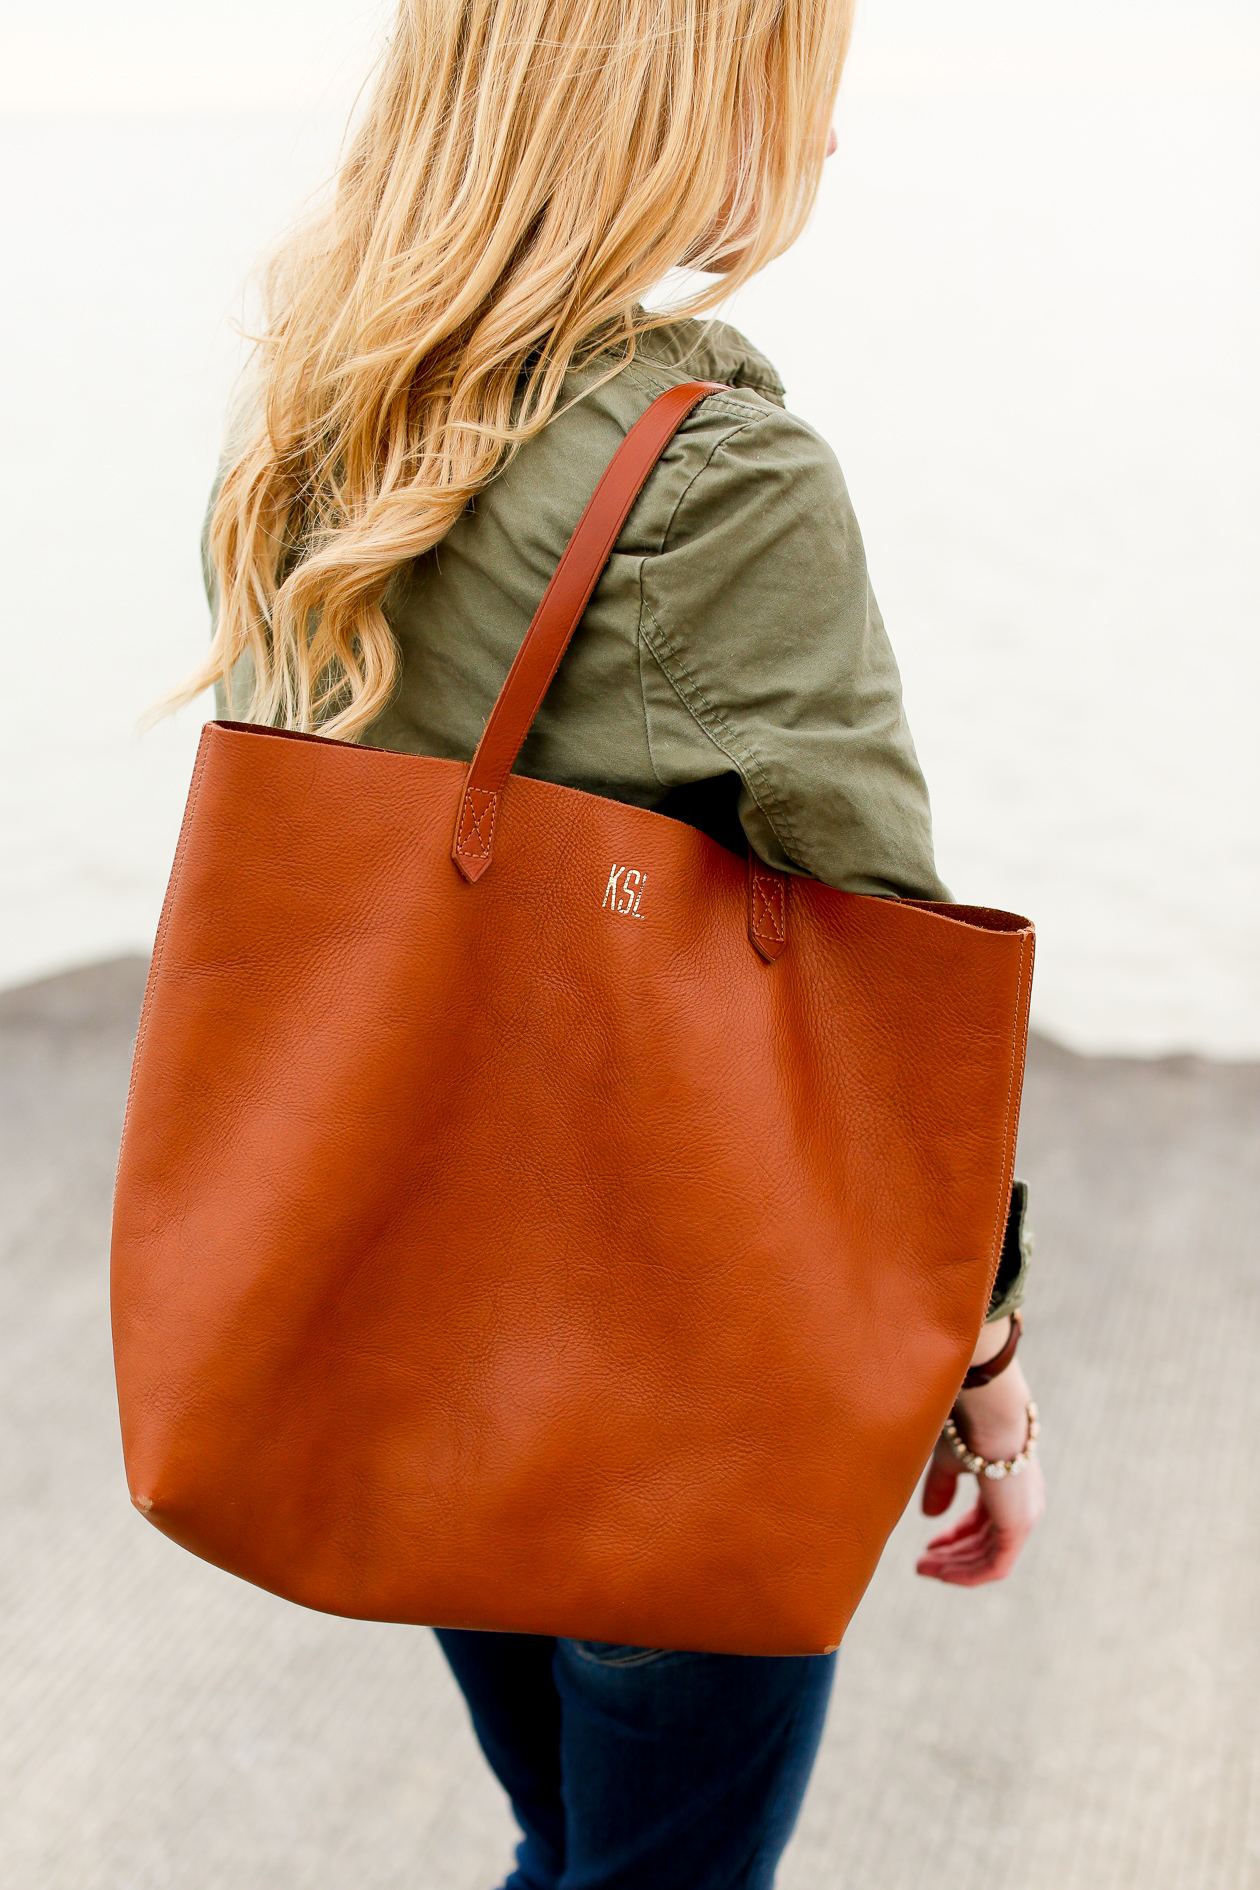 Madewell Transport Tote-52